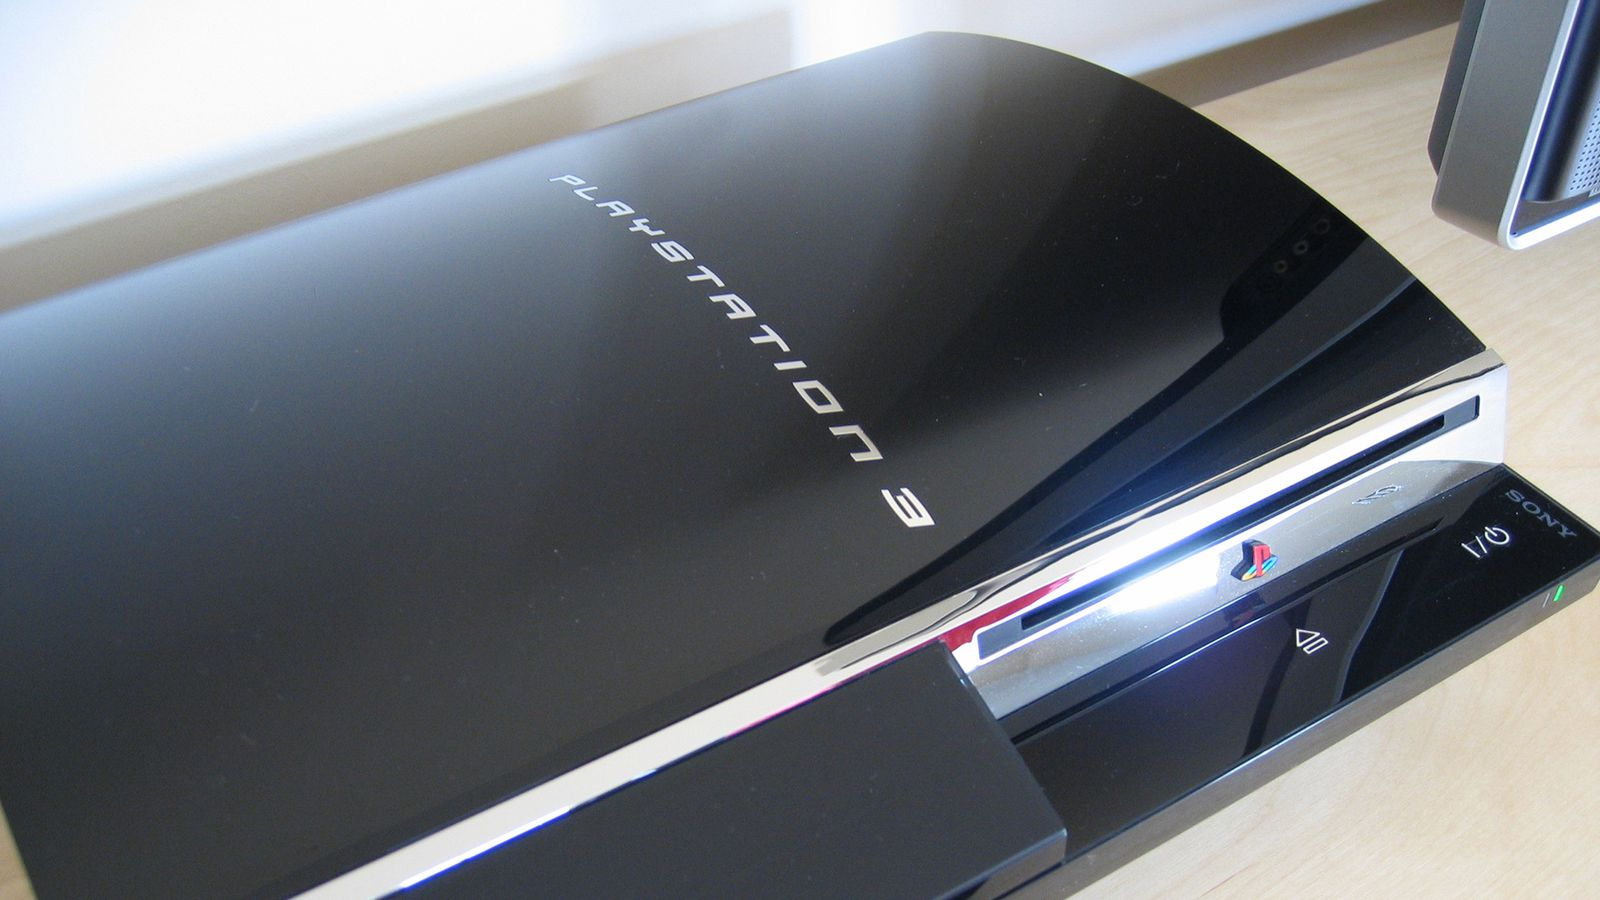 How To File A Class Action Lawsuit >> PS3 owners can now file claims in class-action Linux ...